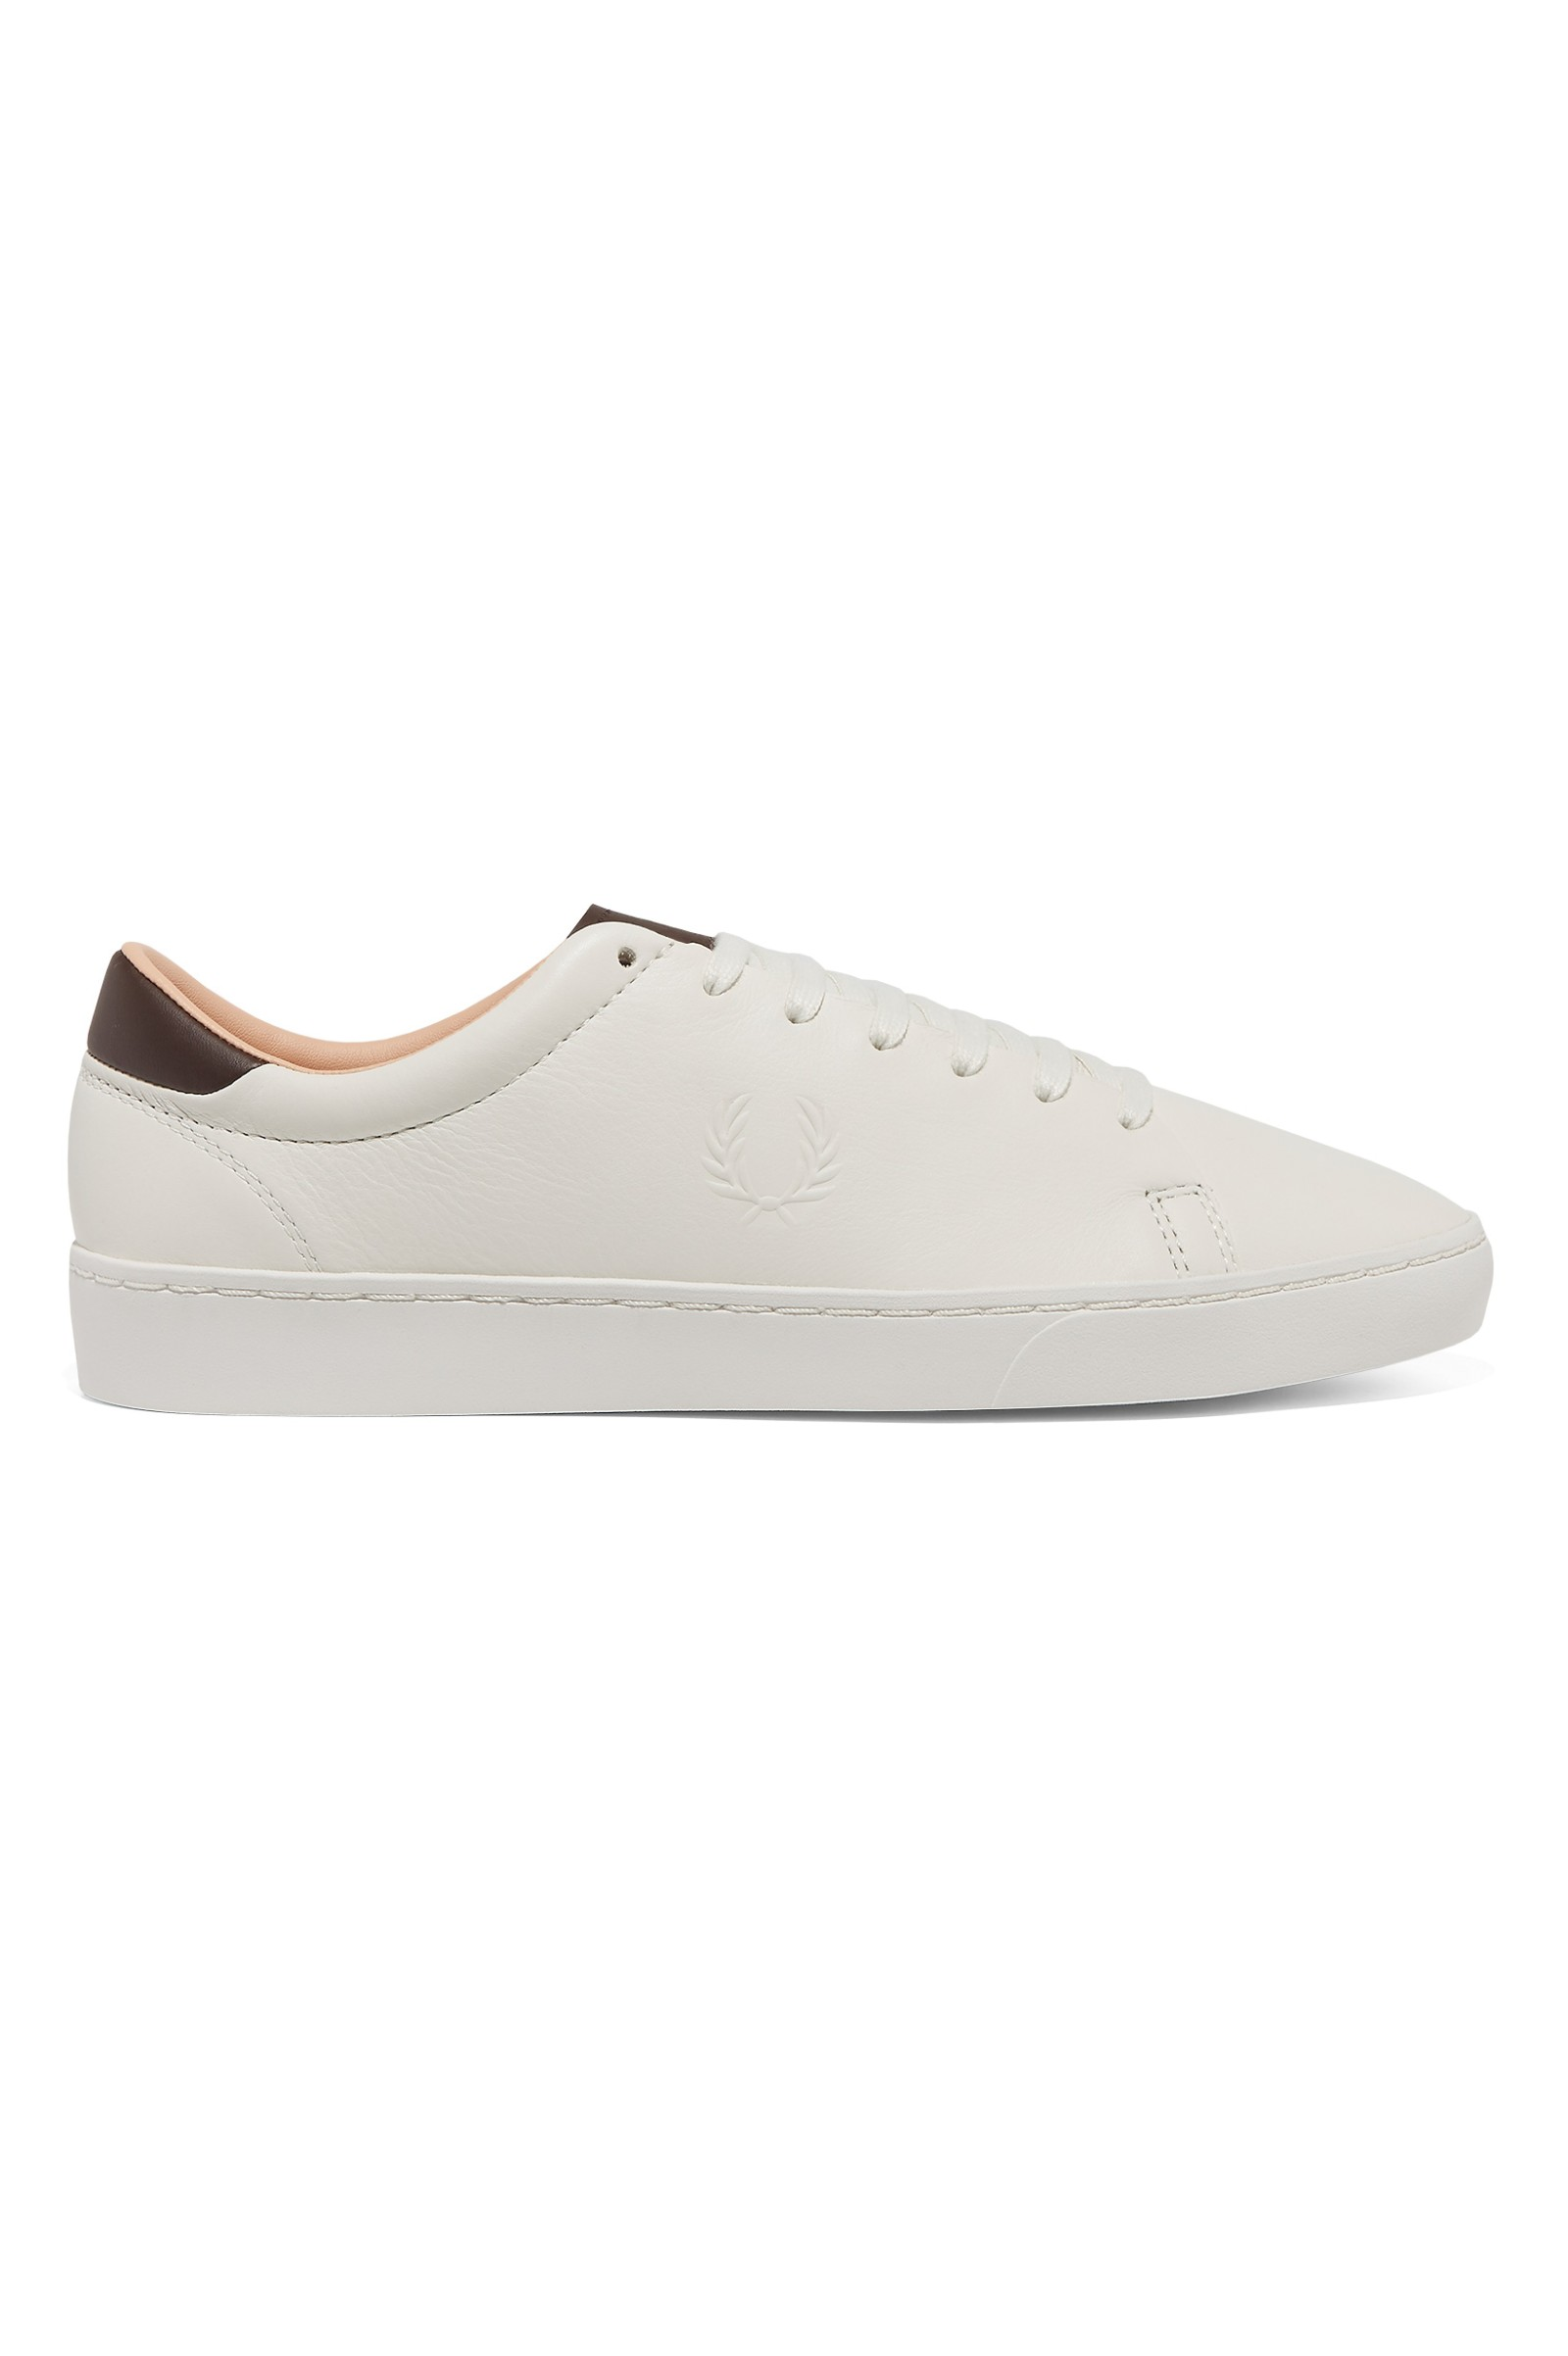 Fred Perry Spencer Premium Leather Jeu Pas Cher En Ligne s01kdDwQ9